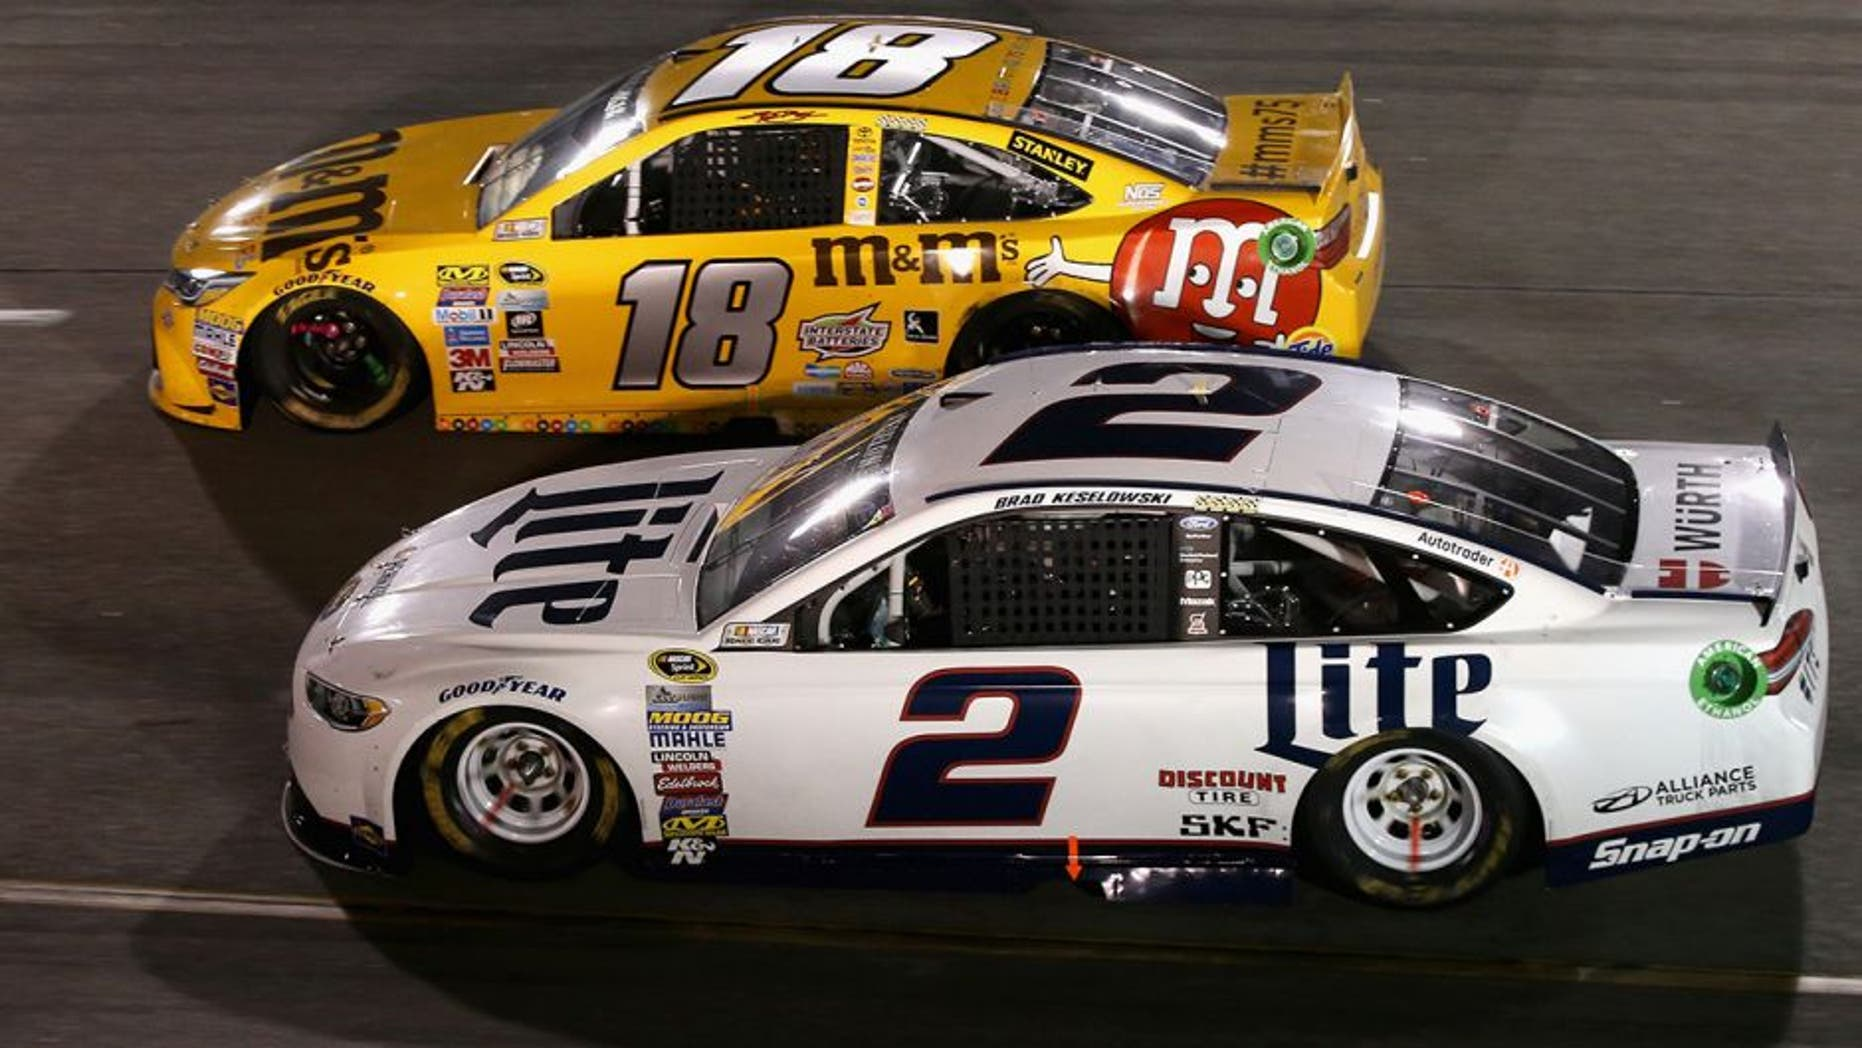 RICHMOND, VA - SEPTEMBER 10: Kyle Busch, driver of the #18 M&M's 75th Anniversary Toyota, races Brad Keselowski, driver of the #2 Miller Lite Ford, during the NASCAR Sprint Cup Series Federated Auto Parts 400 at Richmond International Raceway on September 10, 2016 in Richmond, Virginia. (Photo by Sean Gardner/Getty Images)